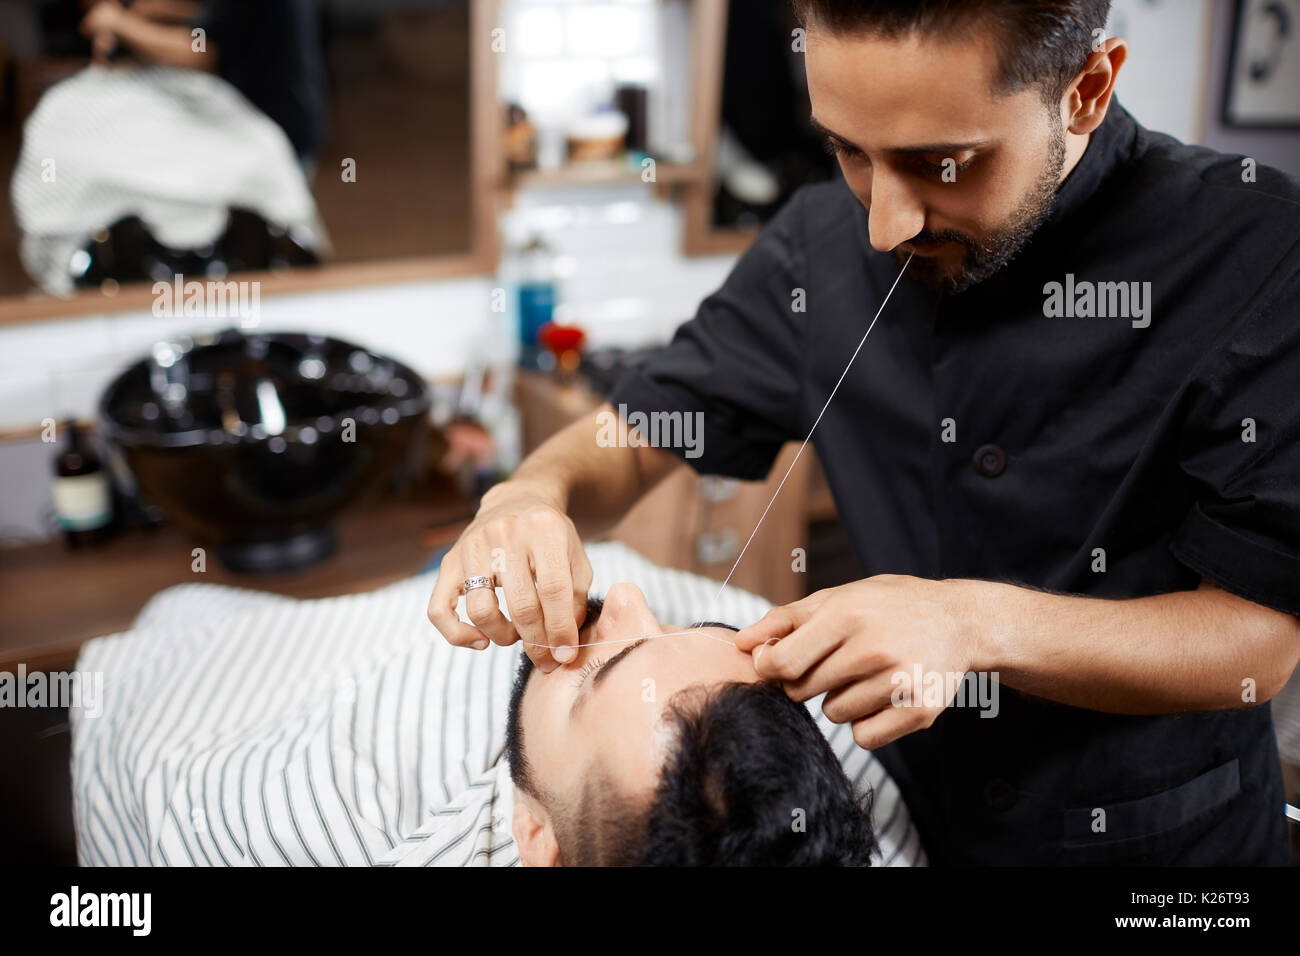 Hairdresser in black cutting bread for brunet man with thread. - Stock Image